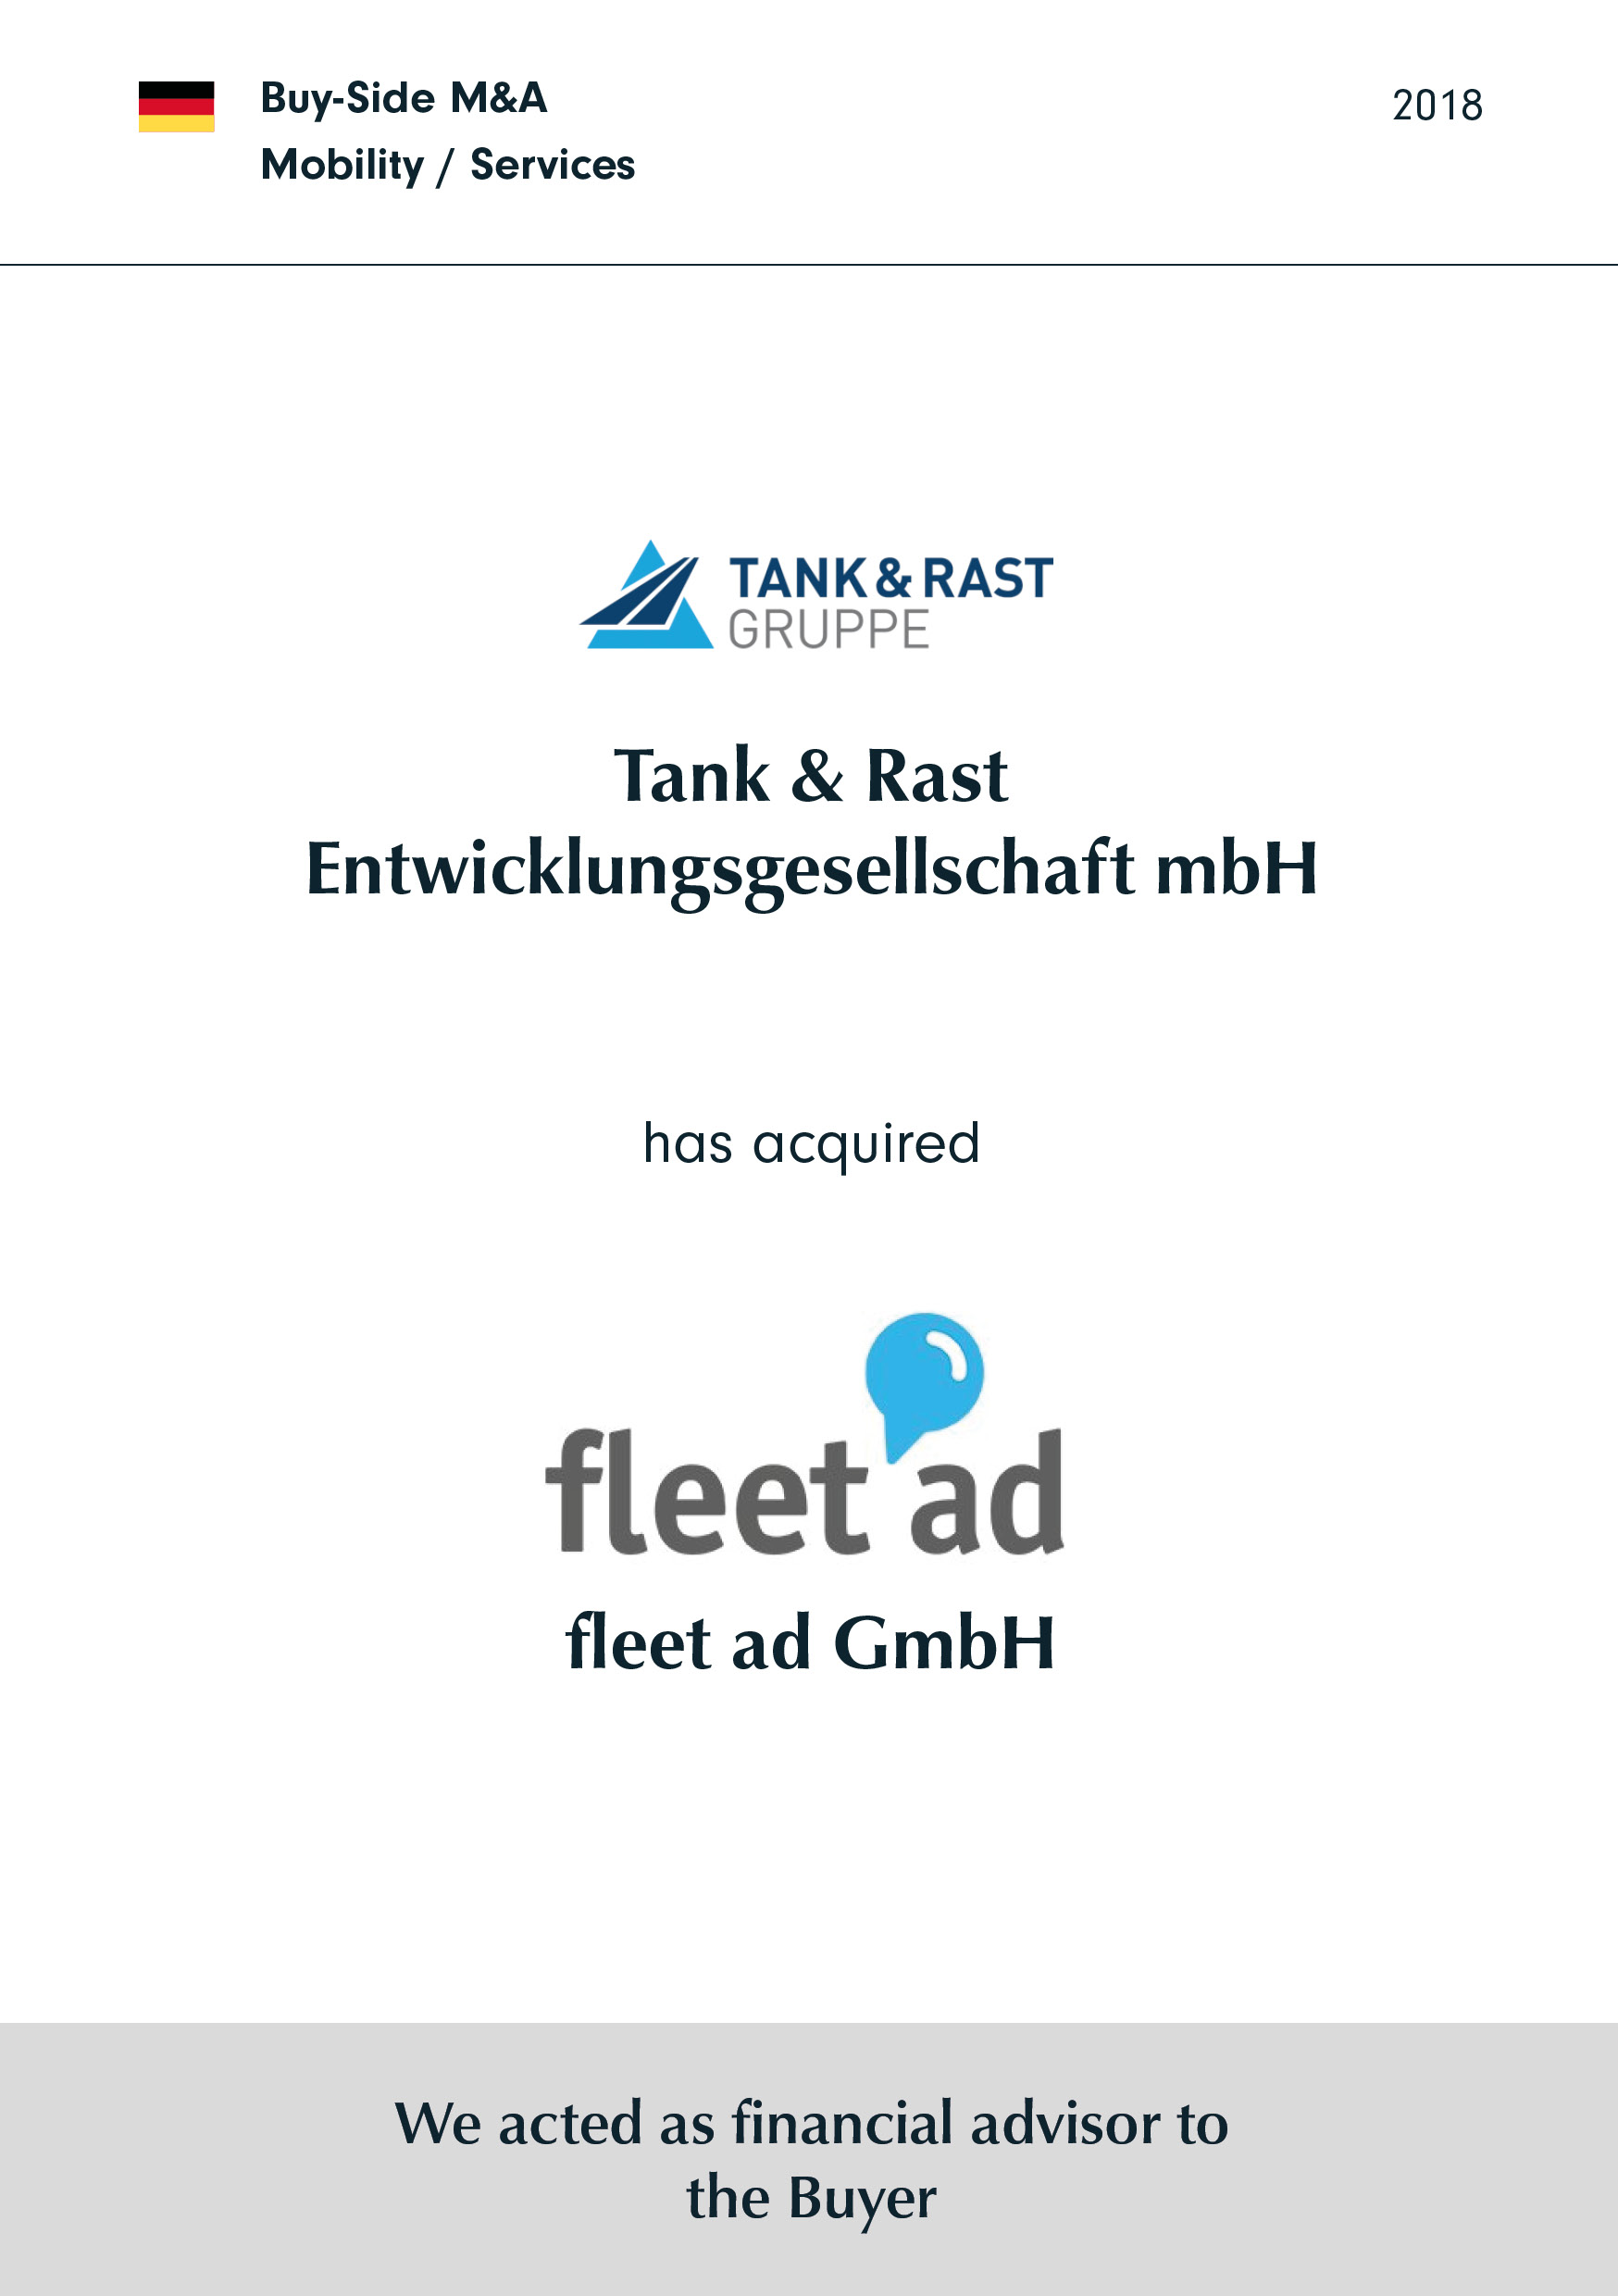 Tank & Rast | has acquired | fleet Ad GmbH